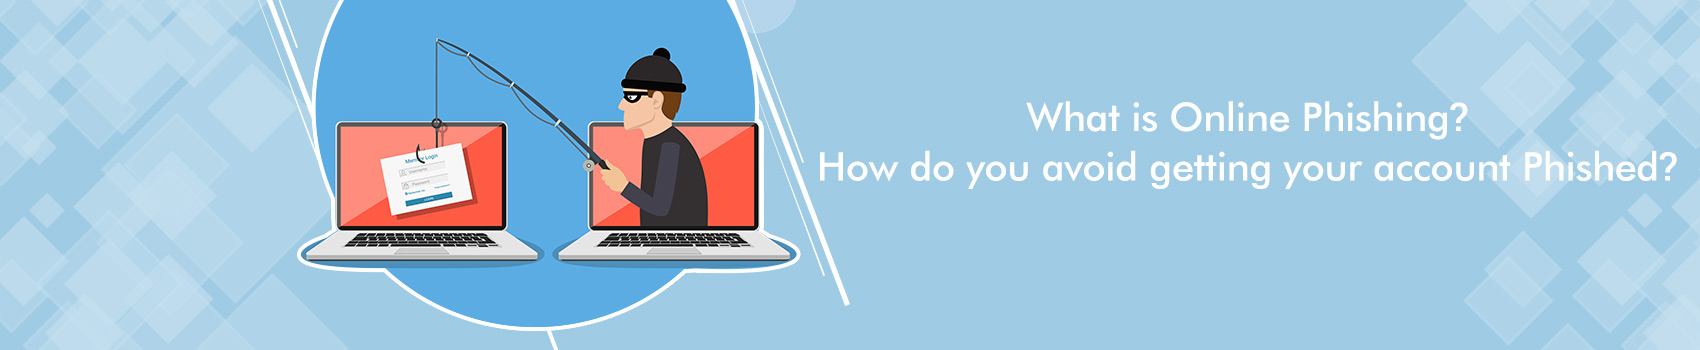 What is Online Phishing? How do you avoid getting your account Phished?